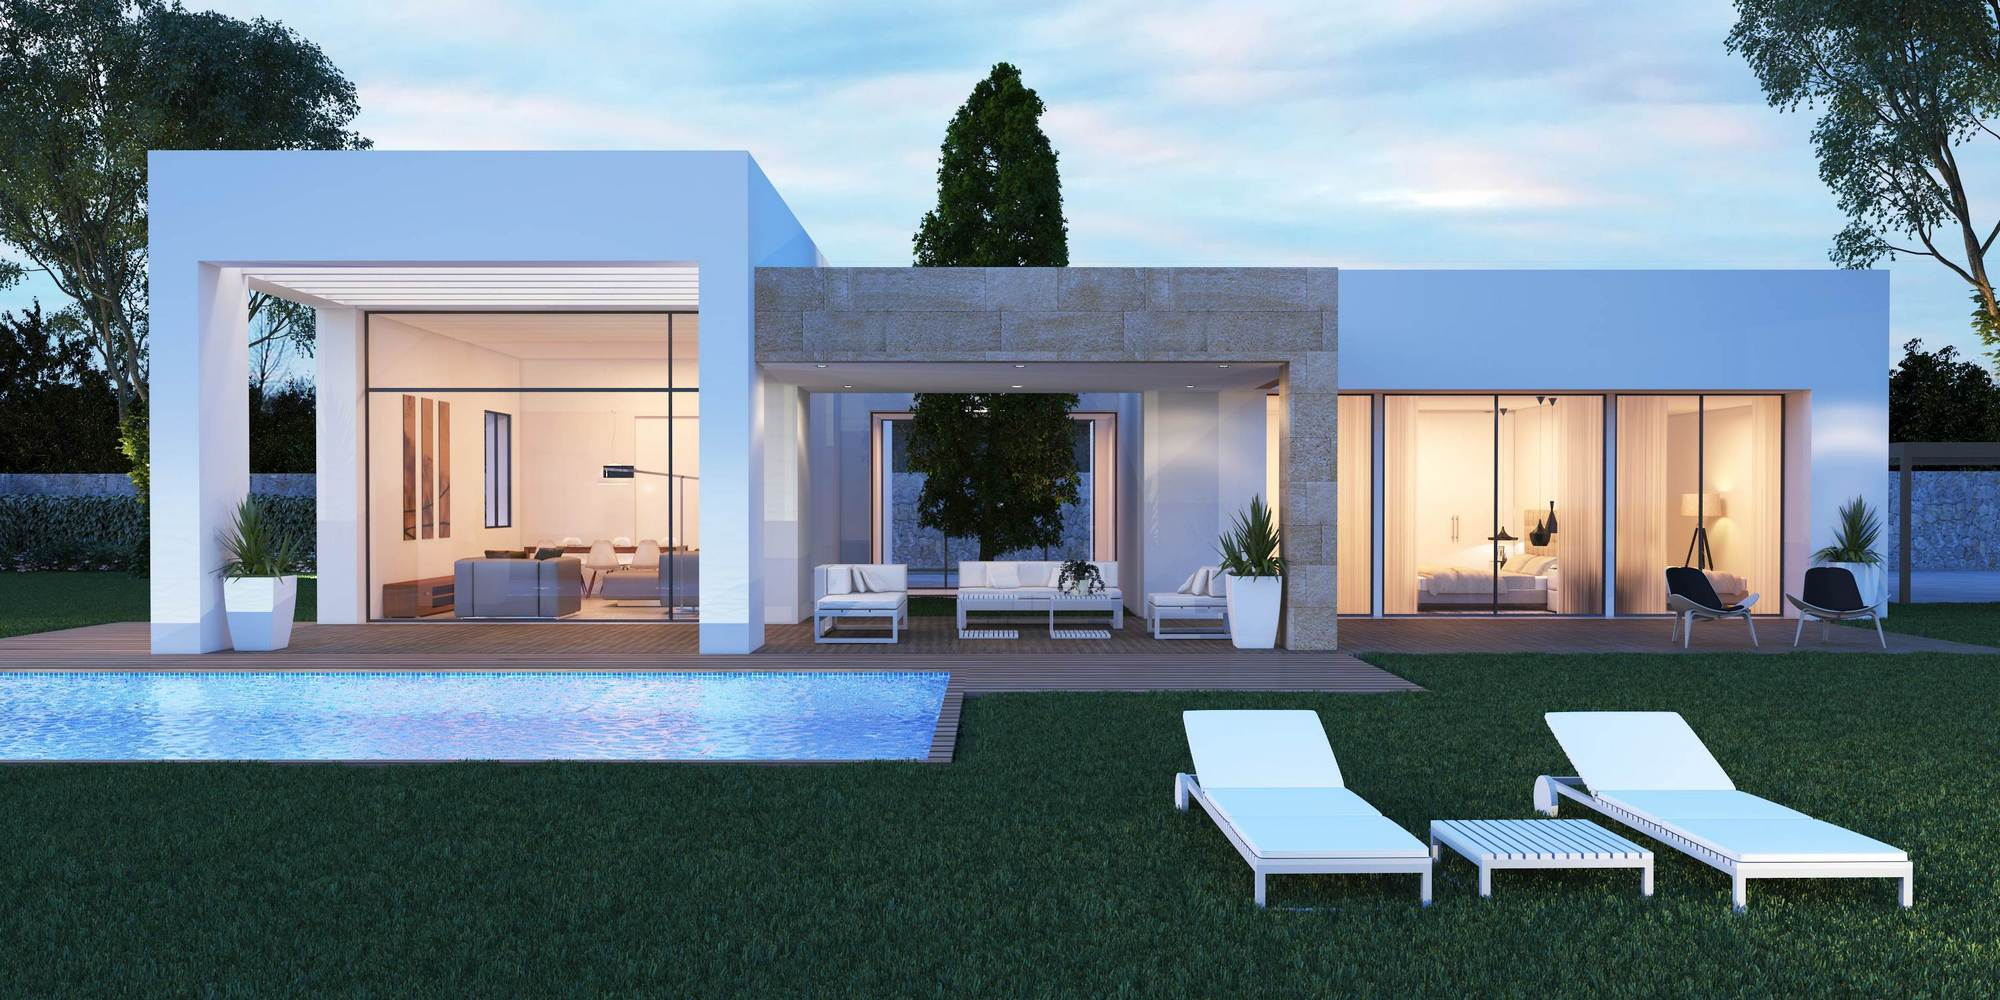 New Construction For Sale in Javea